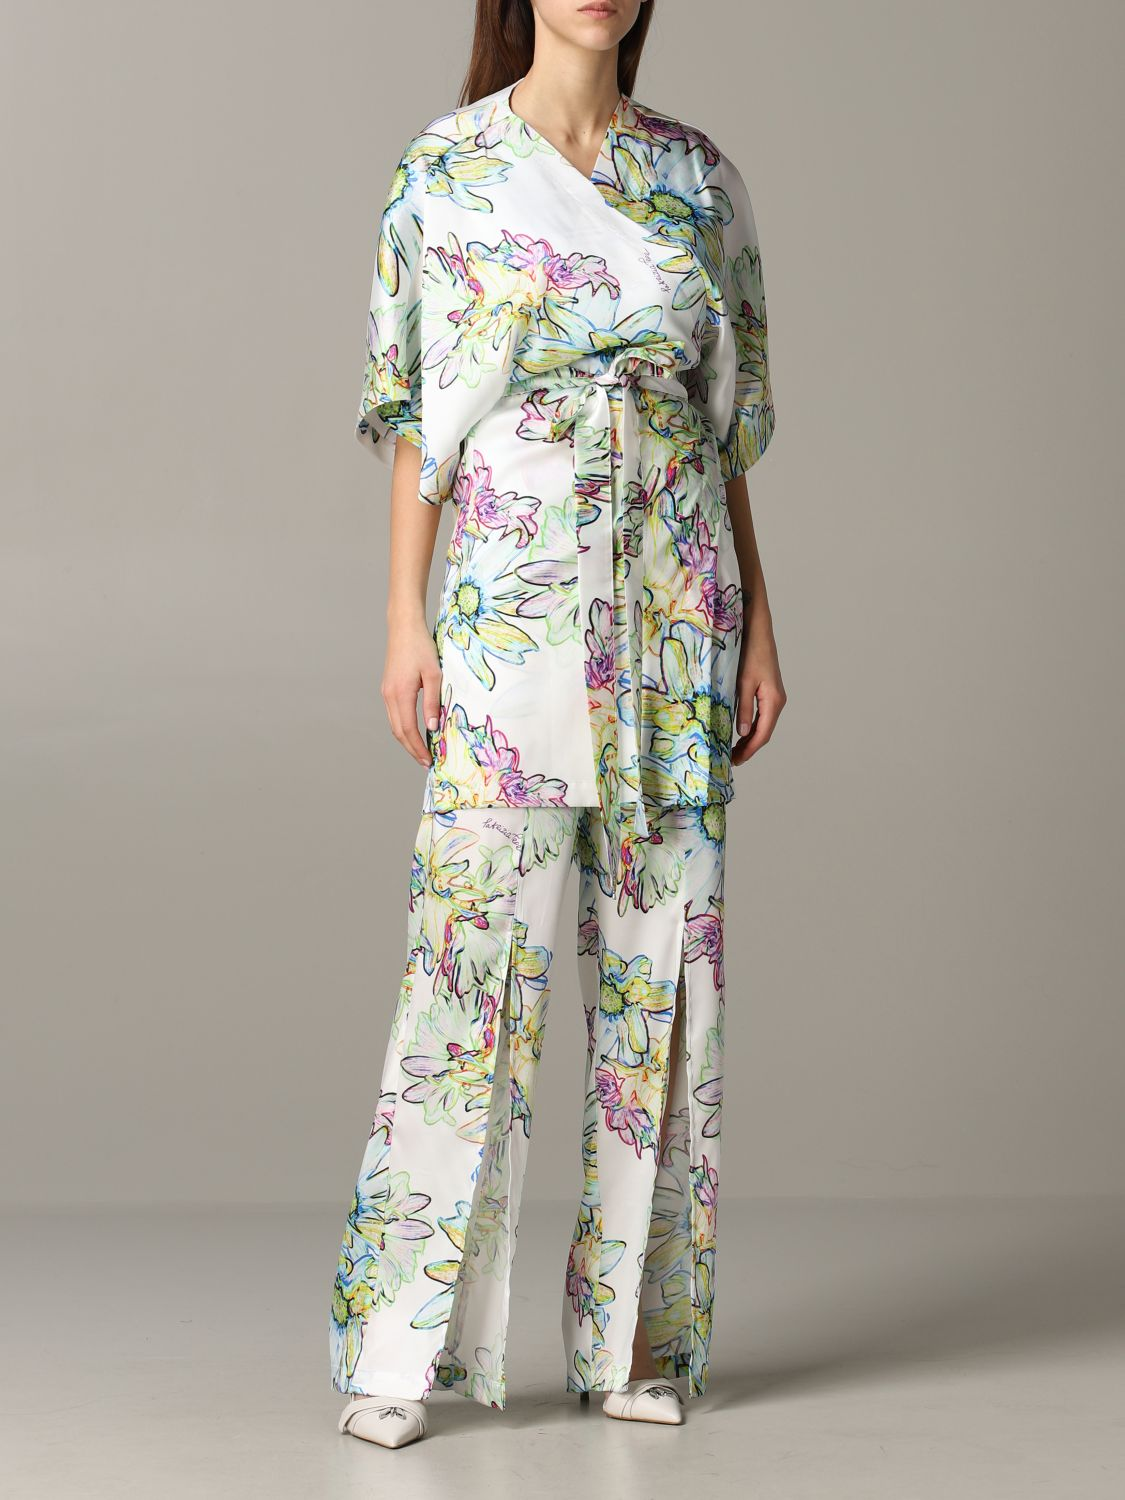 Patrizia Pepe jumpsuit in floral patterned satin white 2